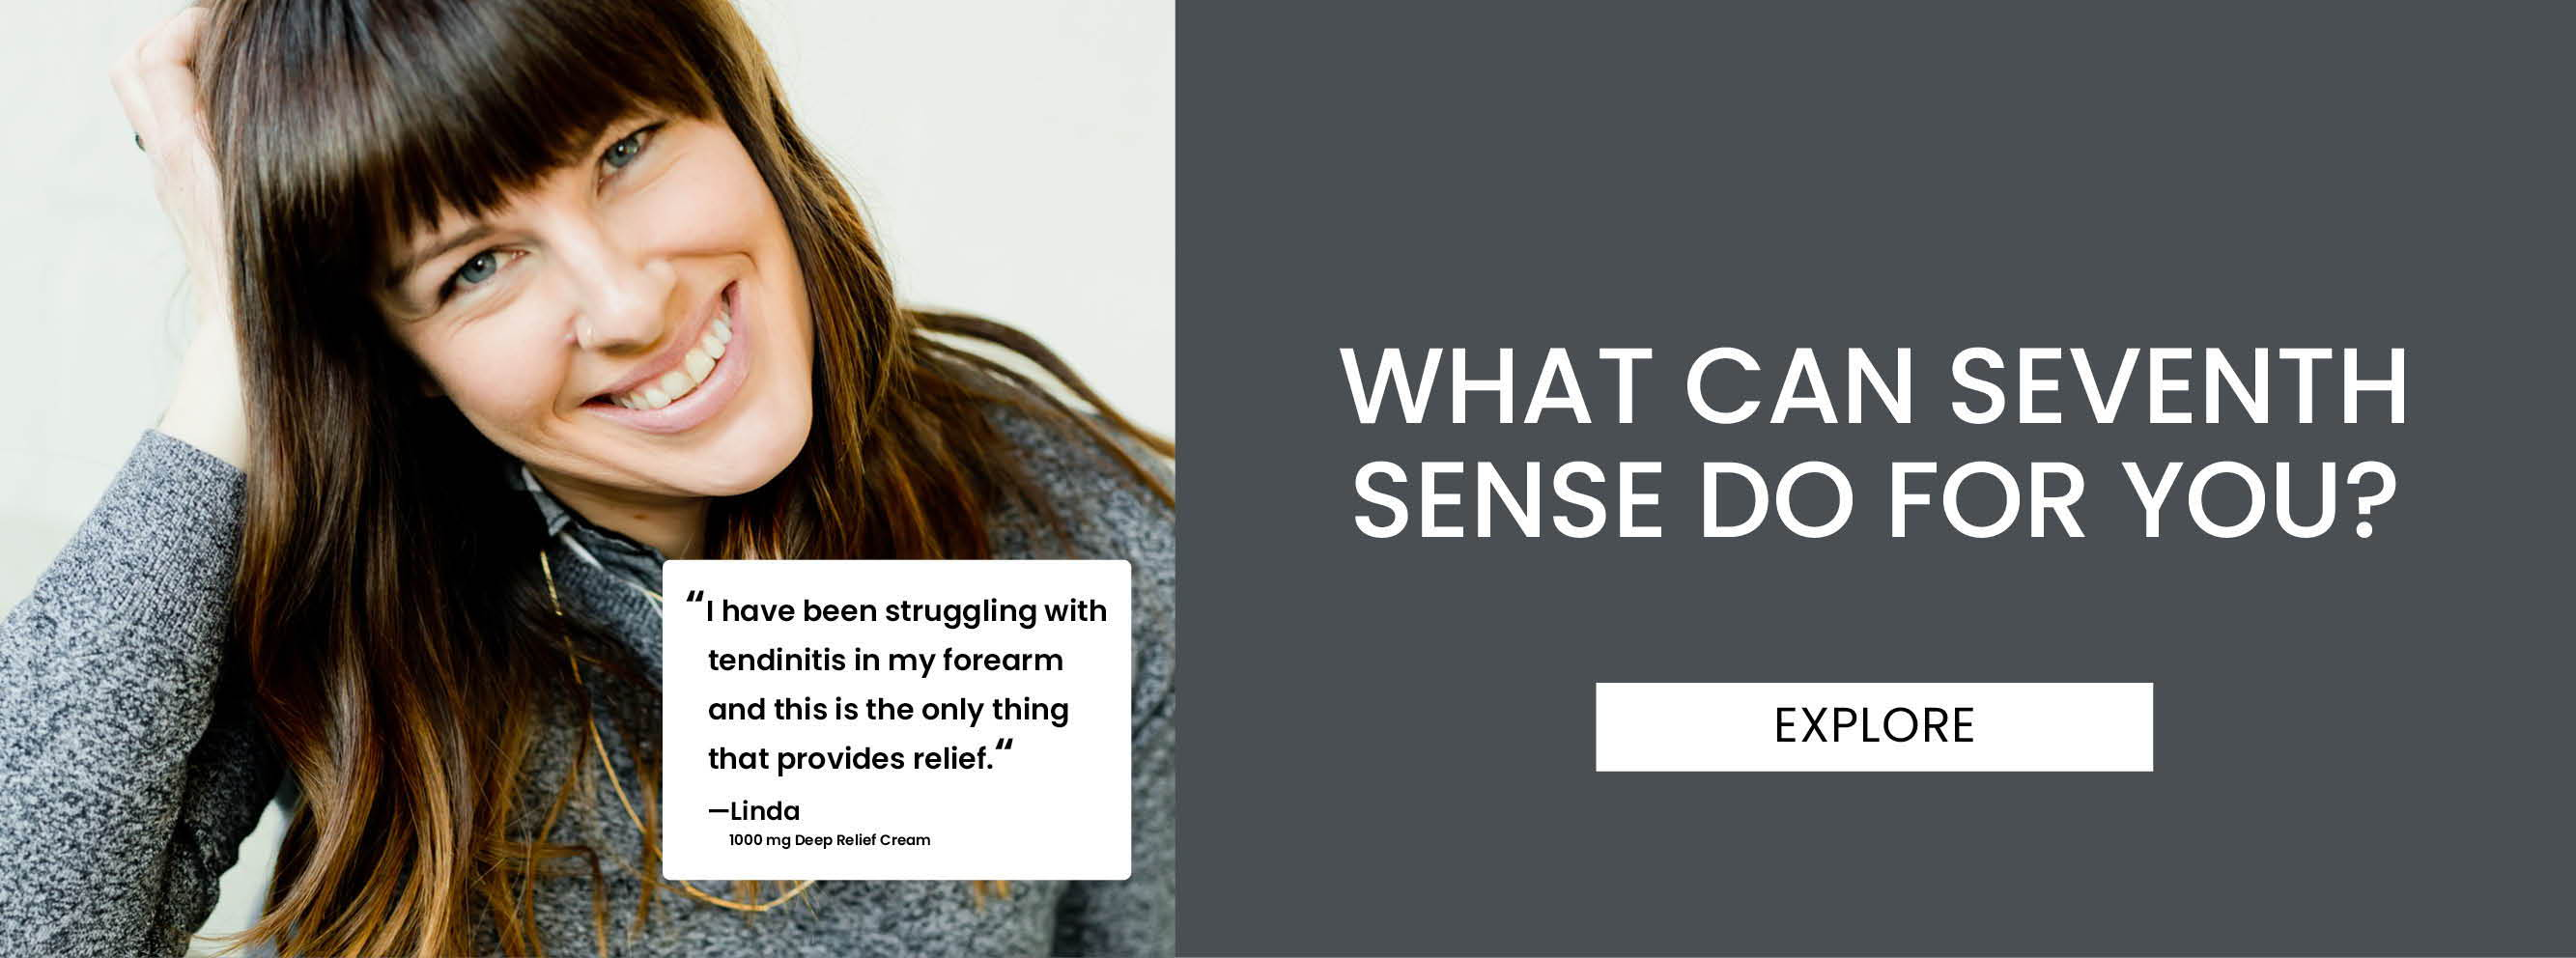 What can seventh sense do for you?